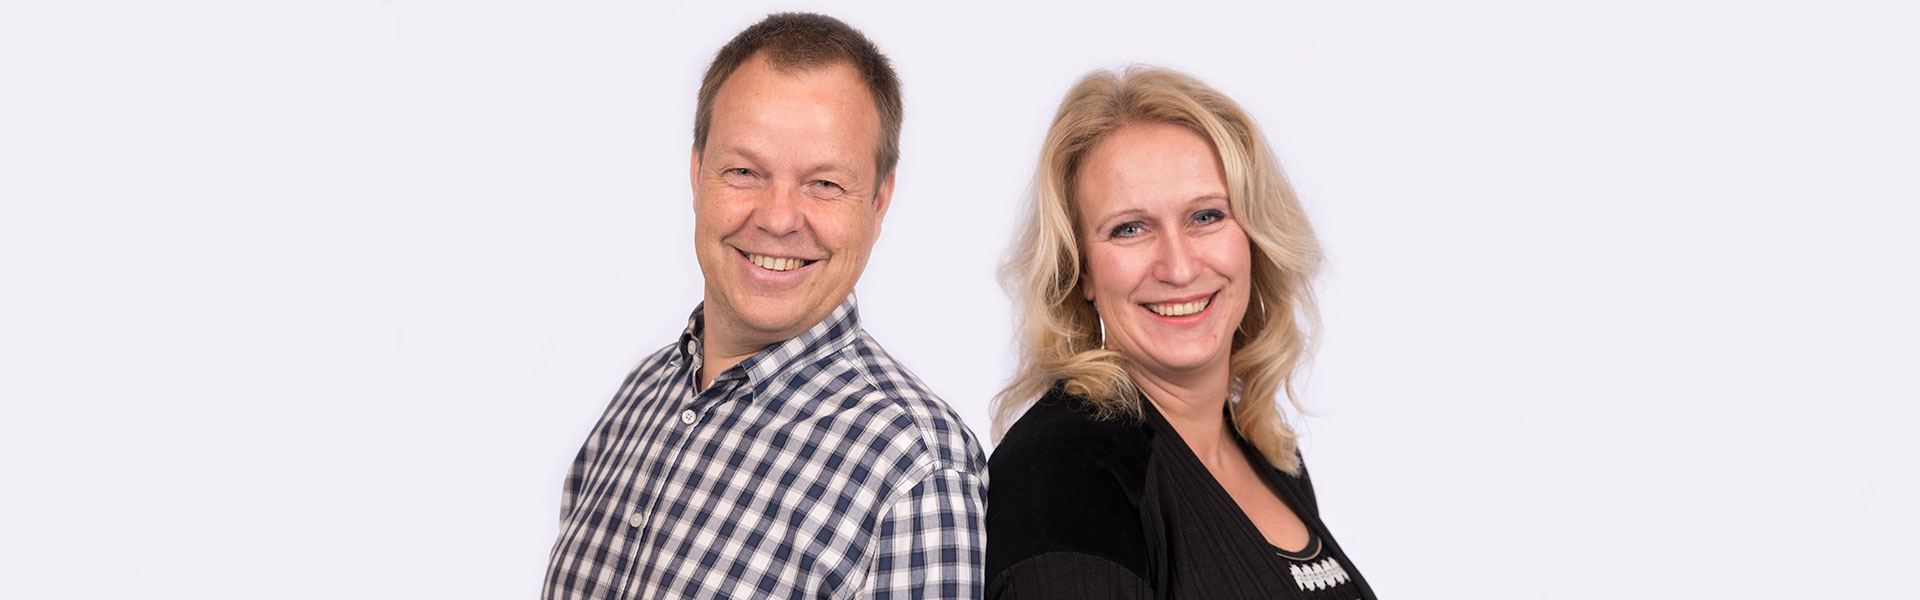 Rob & Edith Kloppend Presenteren